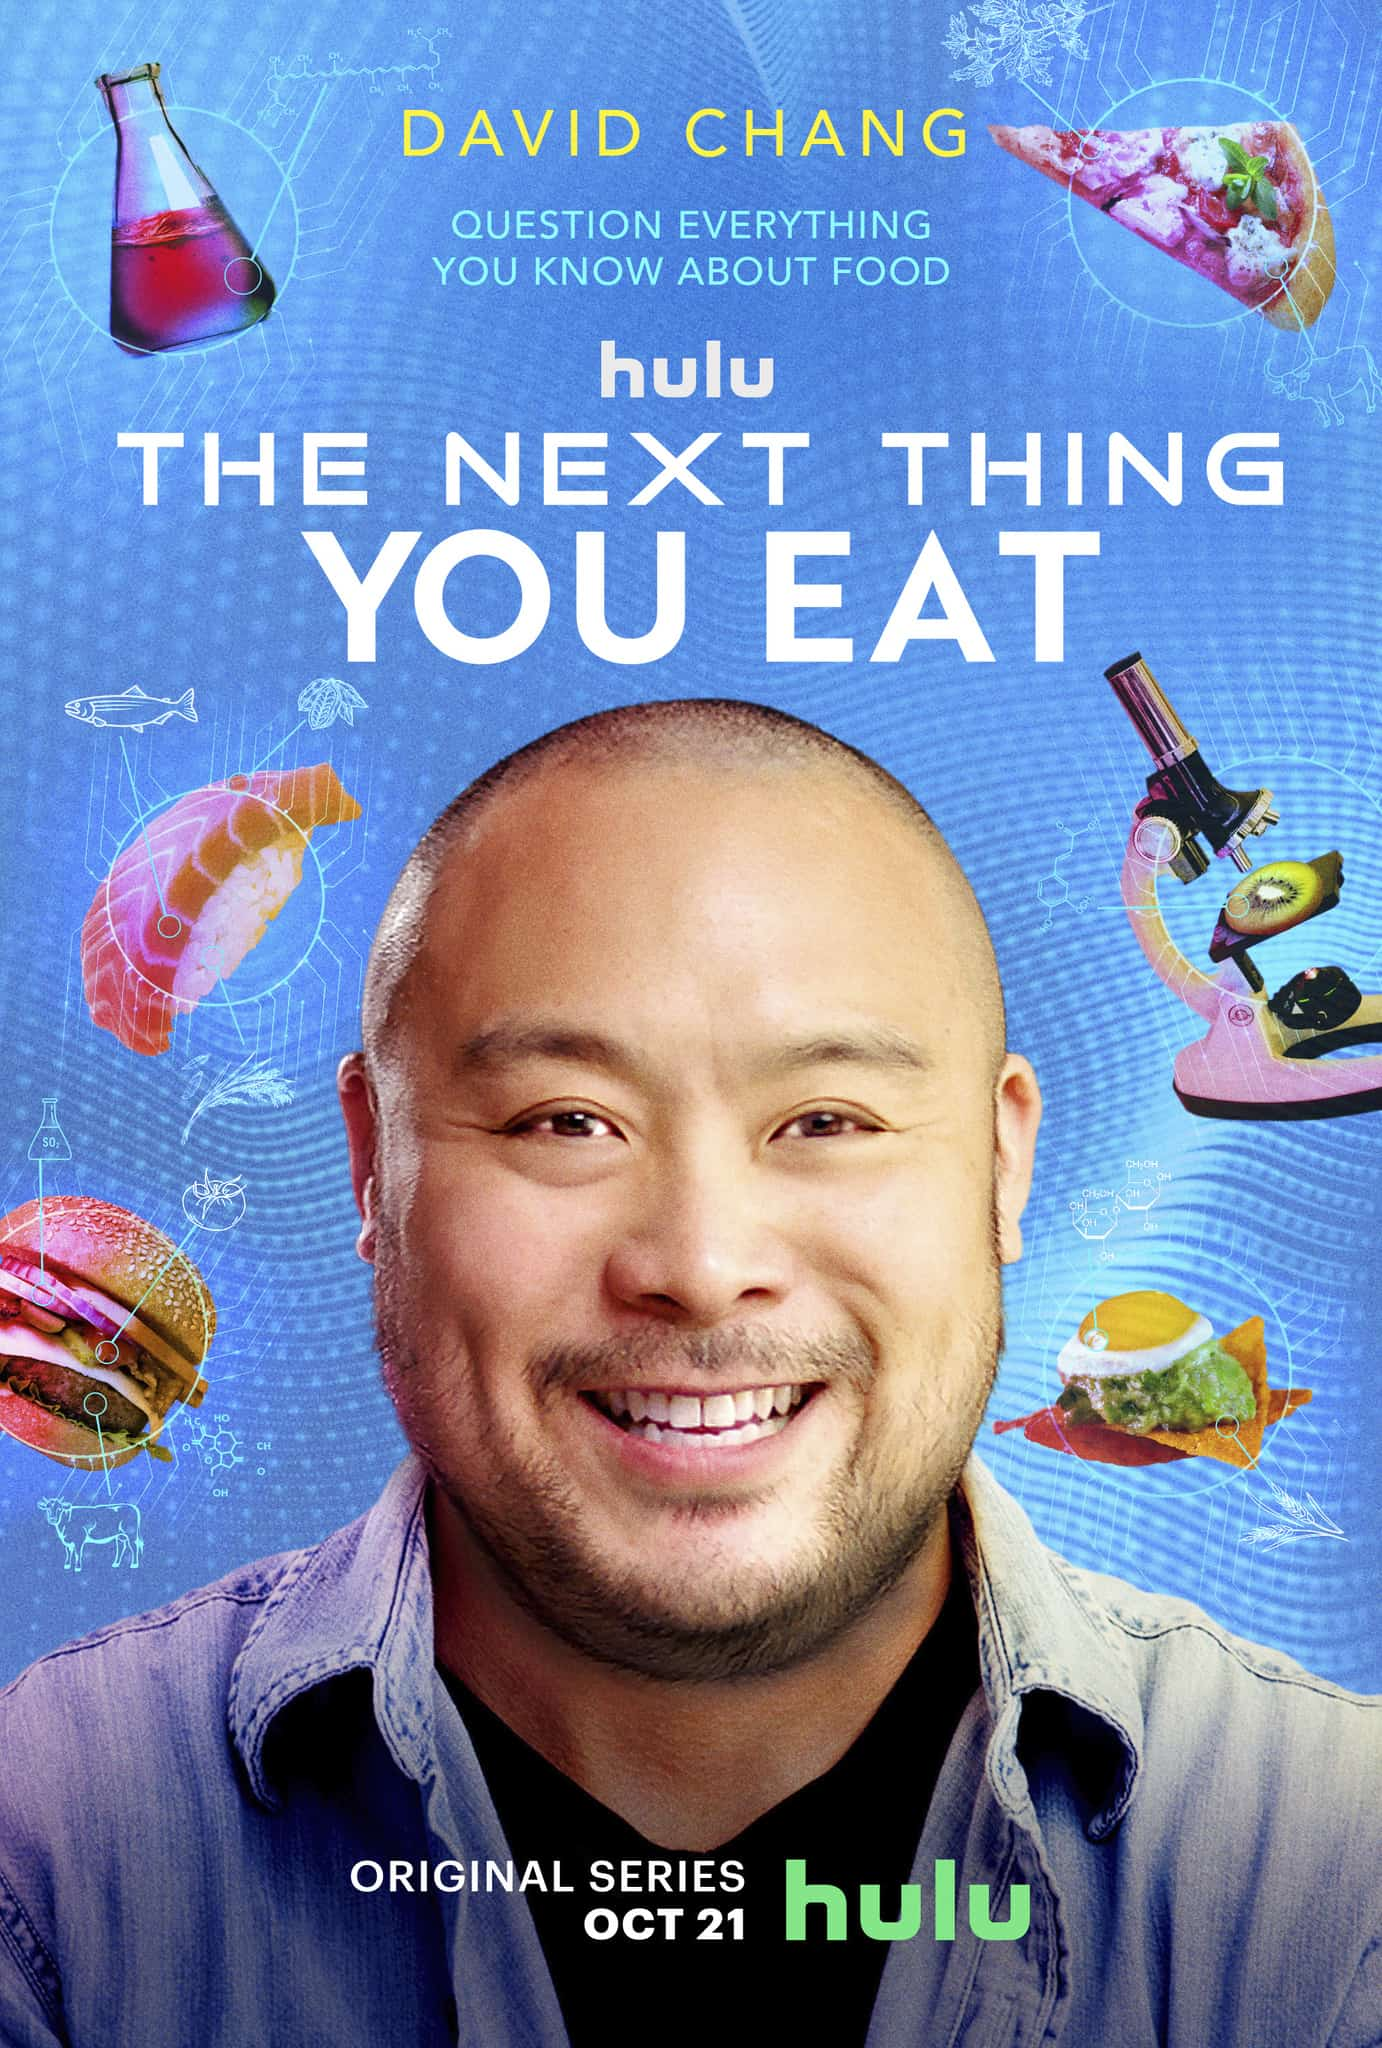 The Next Thing You Eat Review